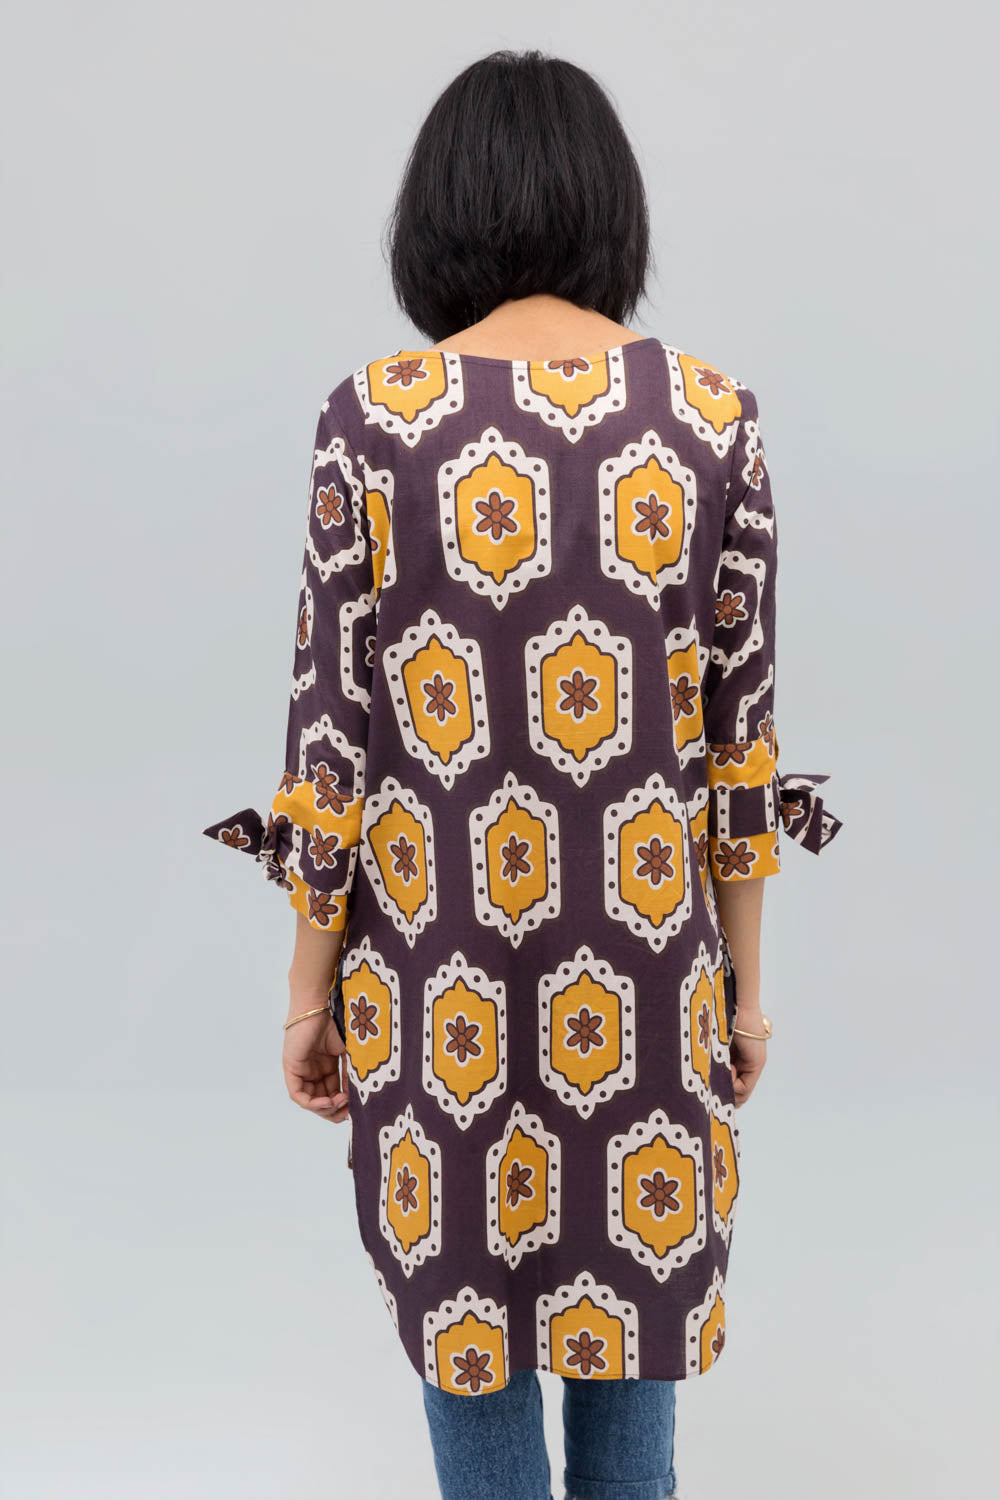 Brown Colour Honey comb Fusion Printed Shirt In 100% Cotton (minimum 30 pieces & 10 from one design) - yesonline.pk